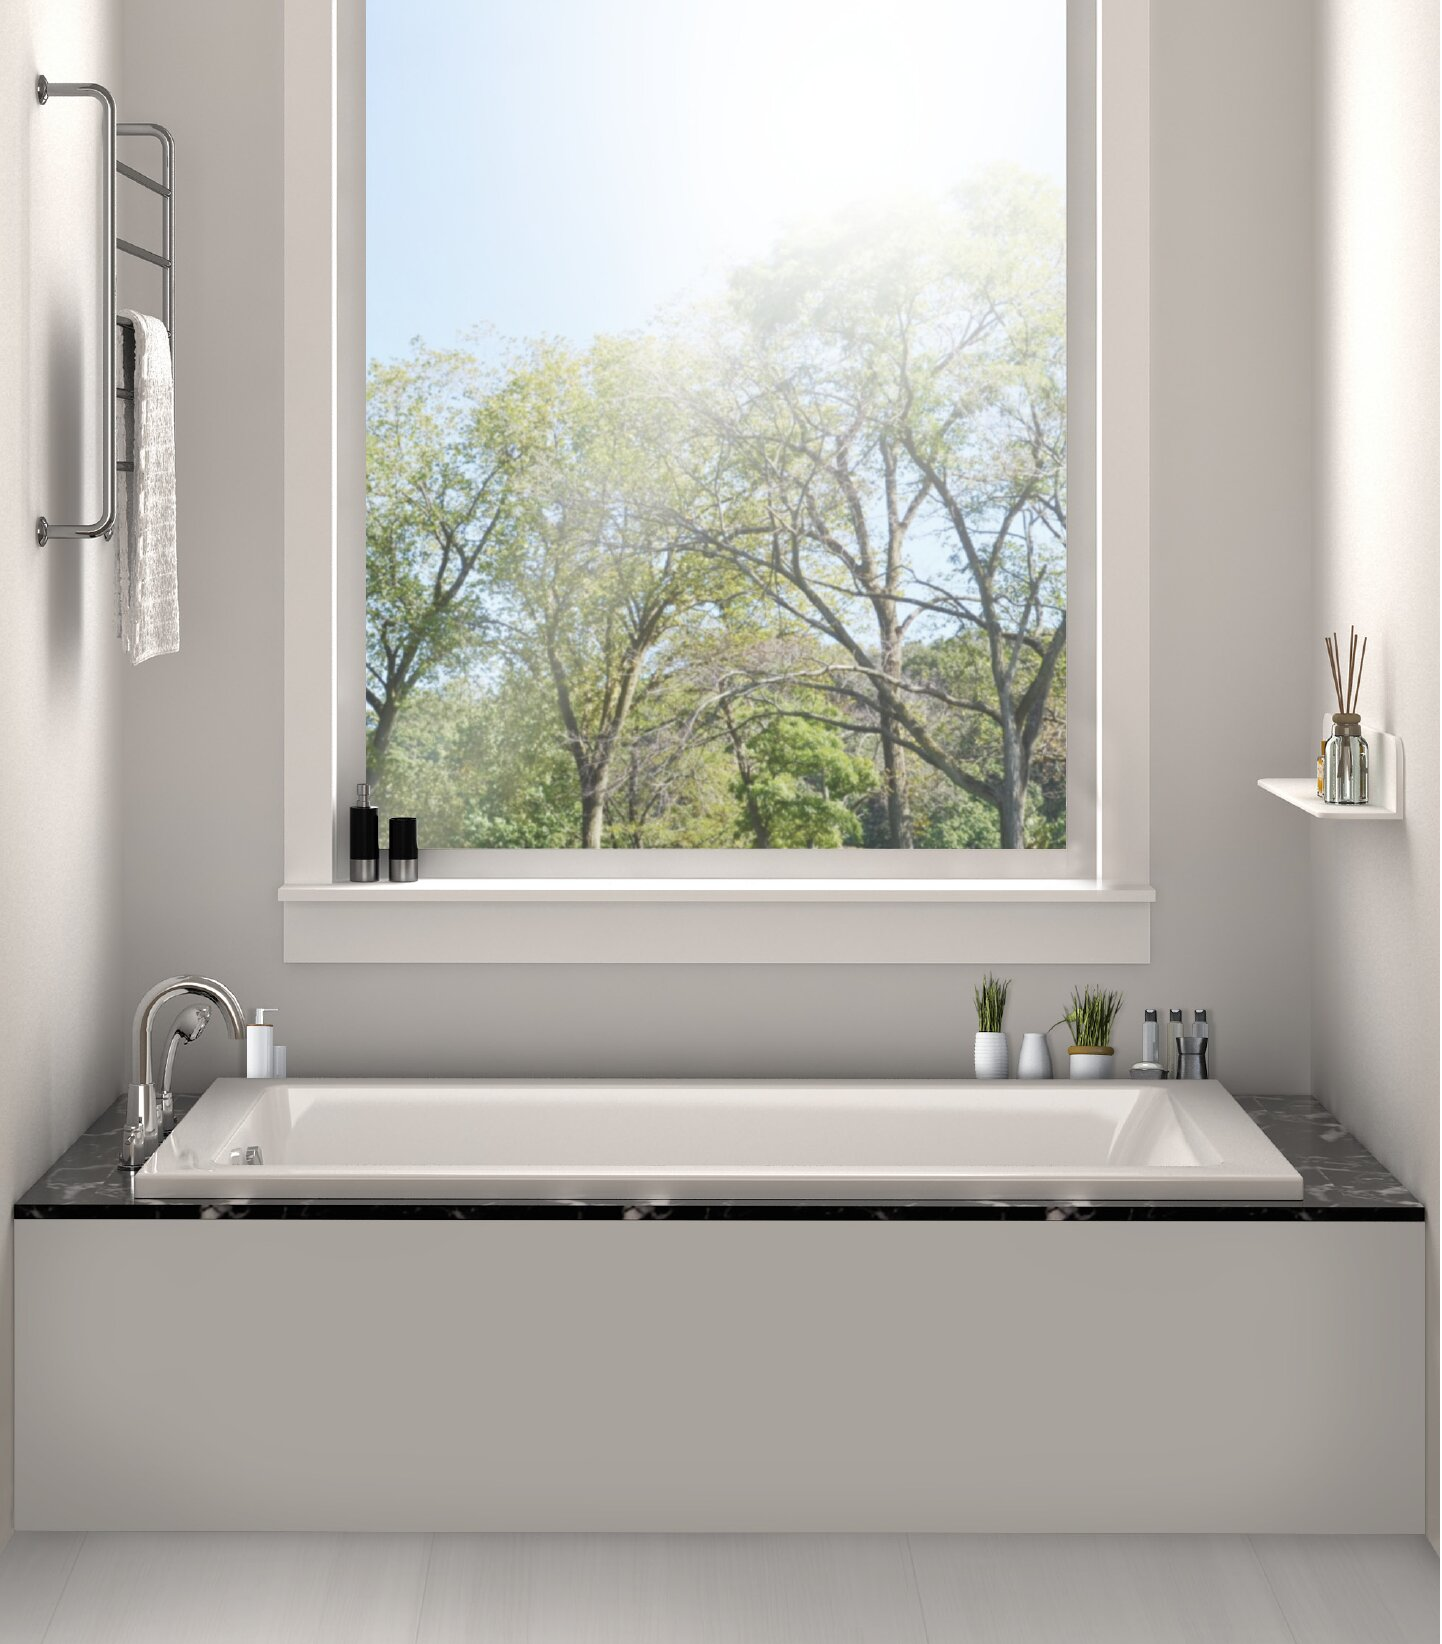 Fine fixtures drop in or alcove 30 x 60 soaking bathtub for Drop in tub sizes